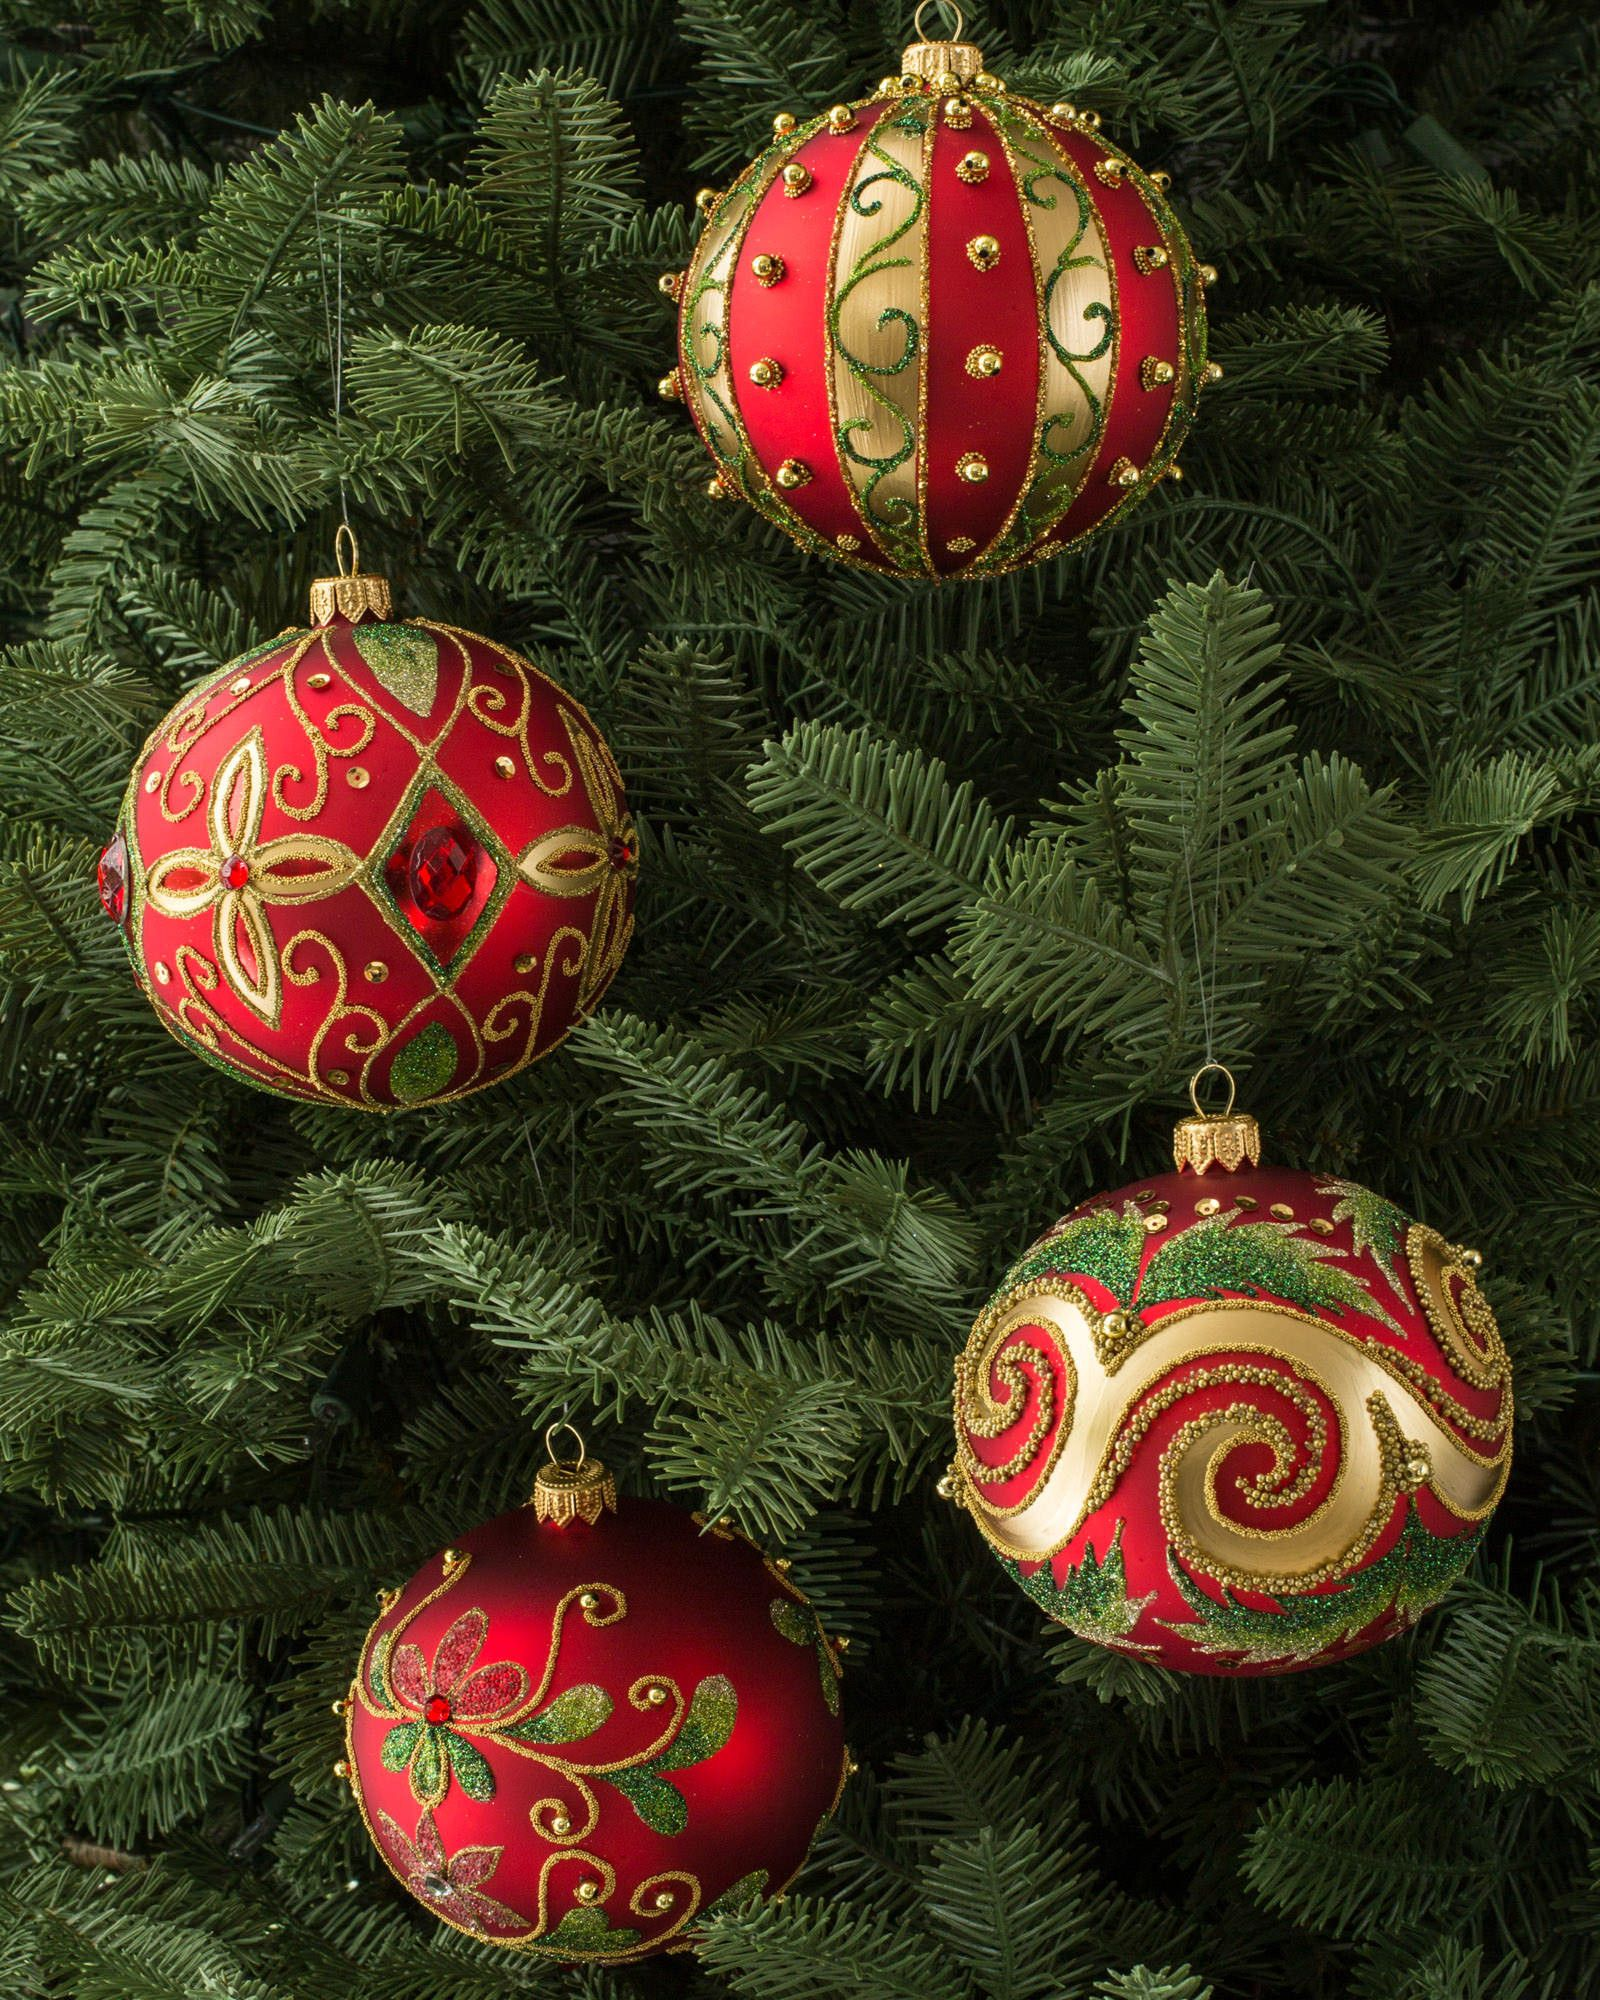 Decorative Christmas Ball Ornaments: Decorative Glass Ball Christmas Ornaments